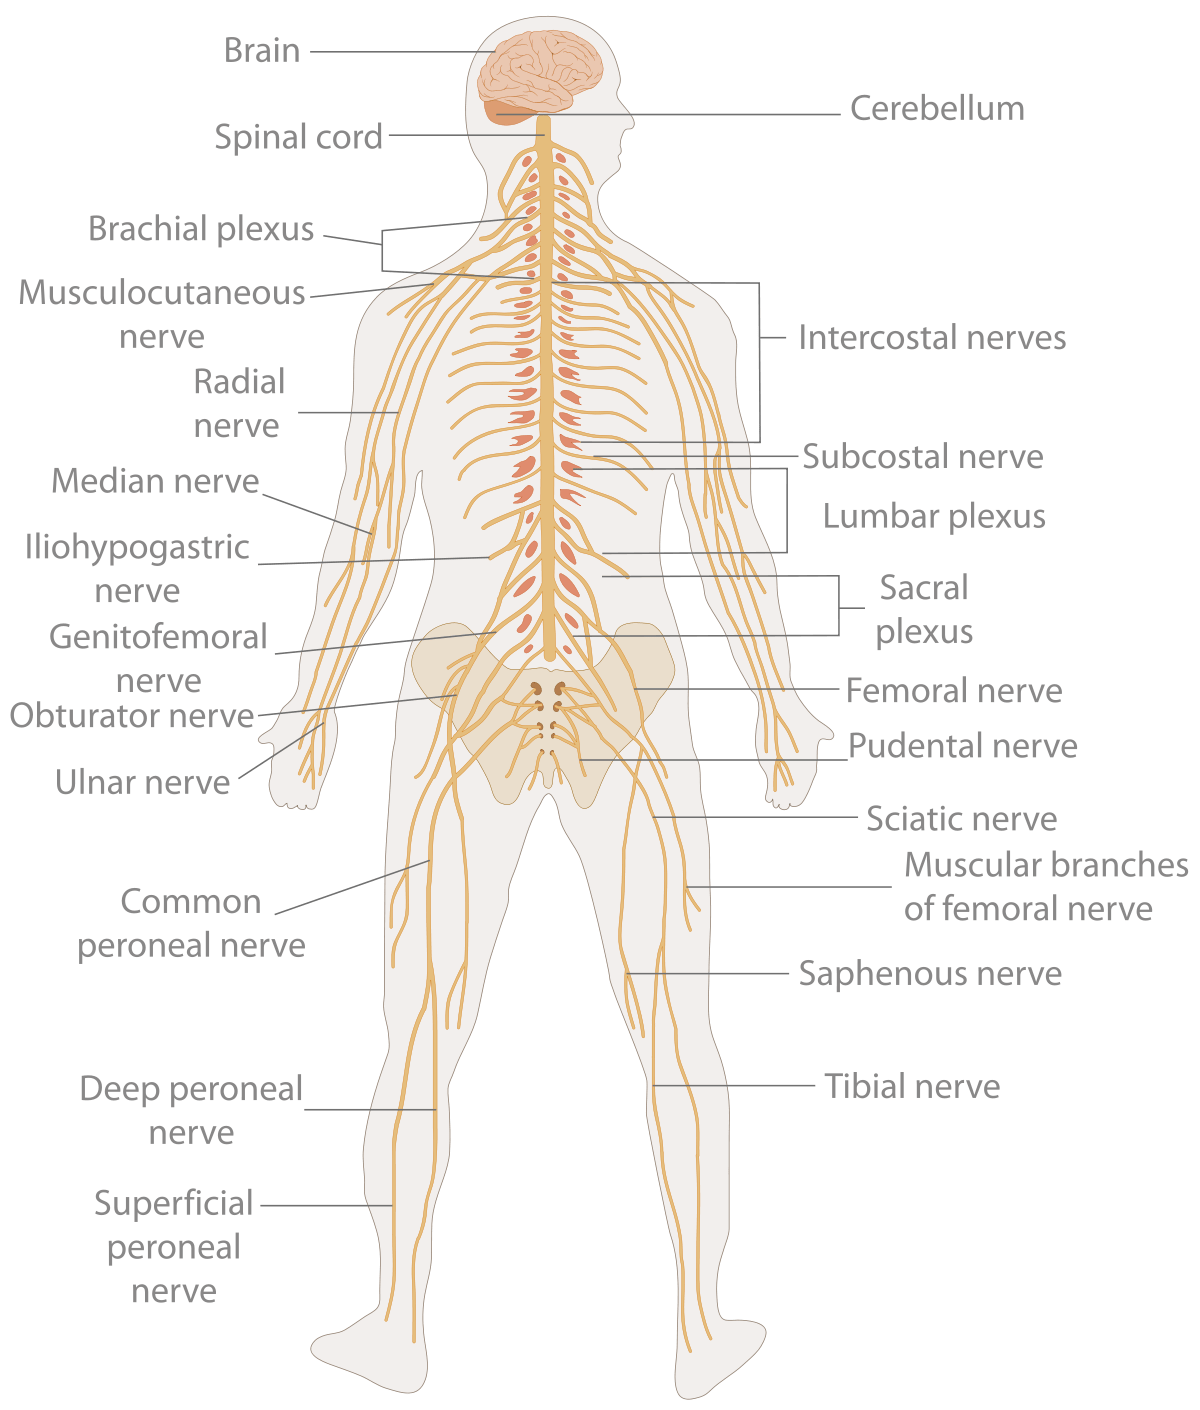 Te Nervous System Diagram